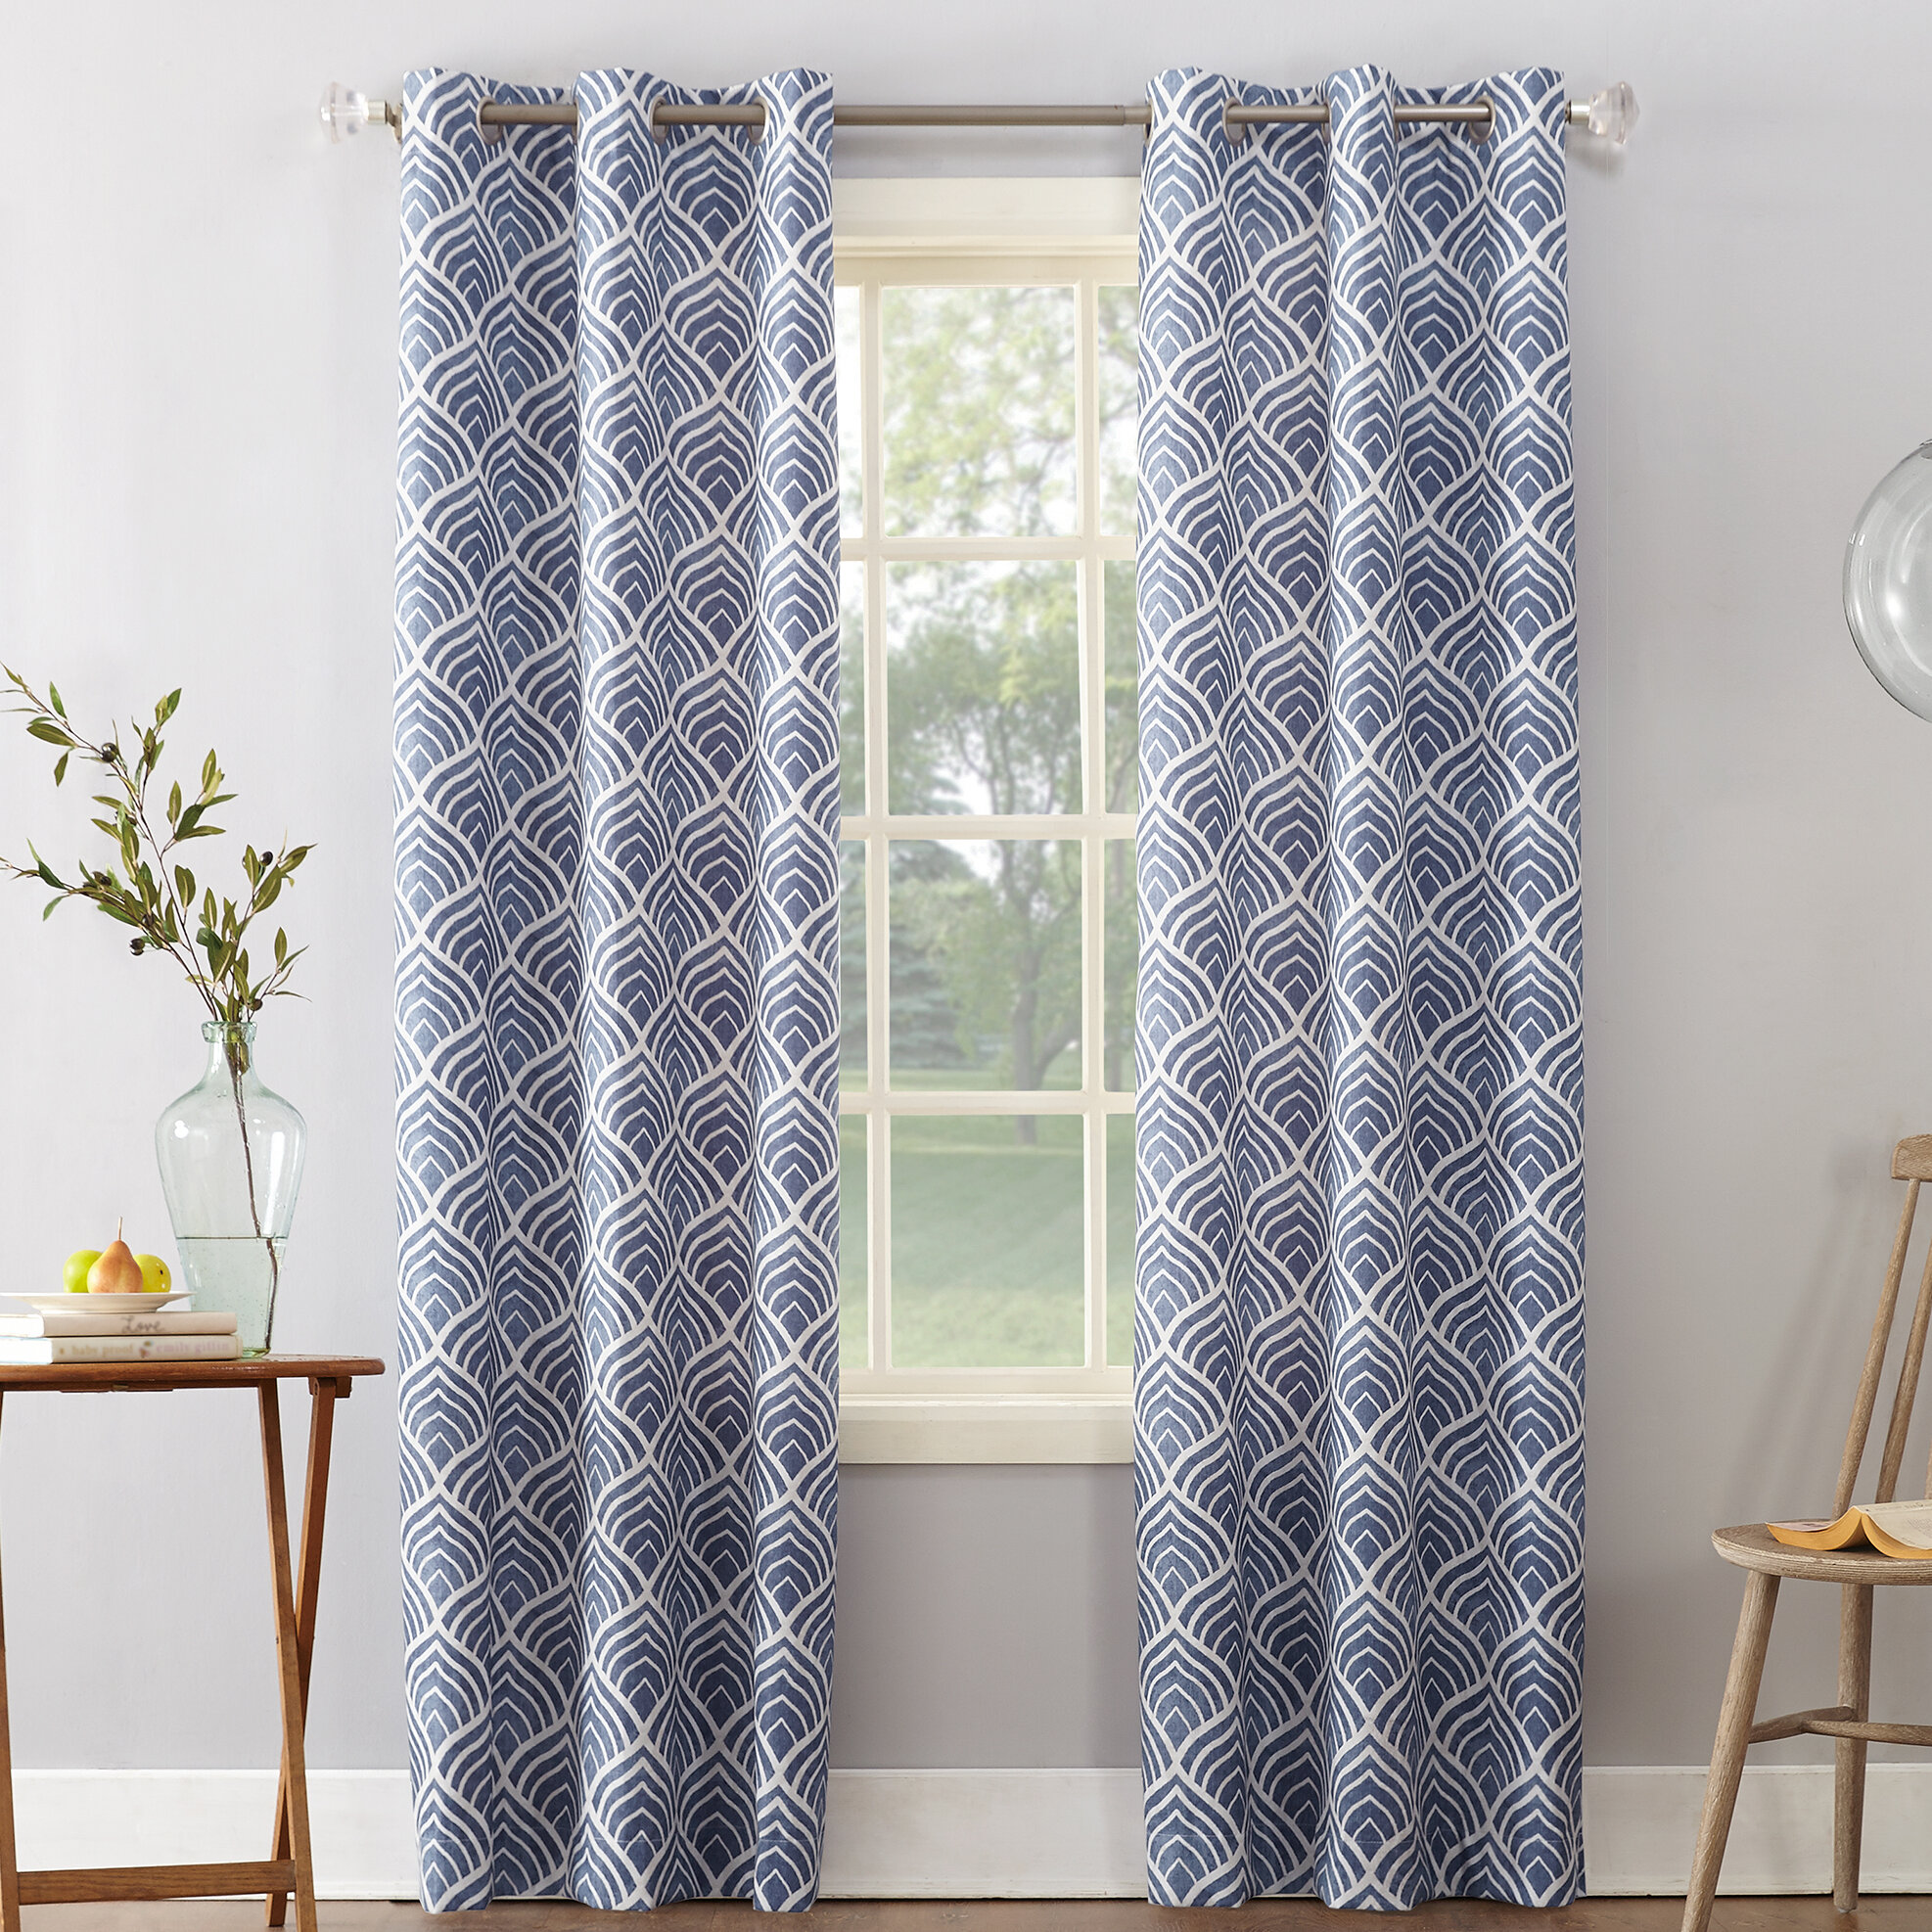 curtain blackout from thermal treatments insulated curten one window top panels panel drape fashion curtains item home pastoral garden in drapes grommet single print geometries